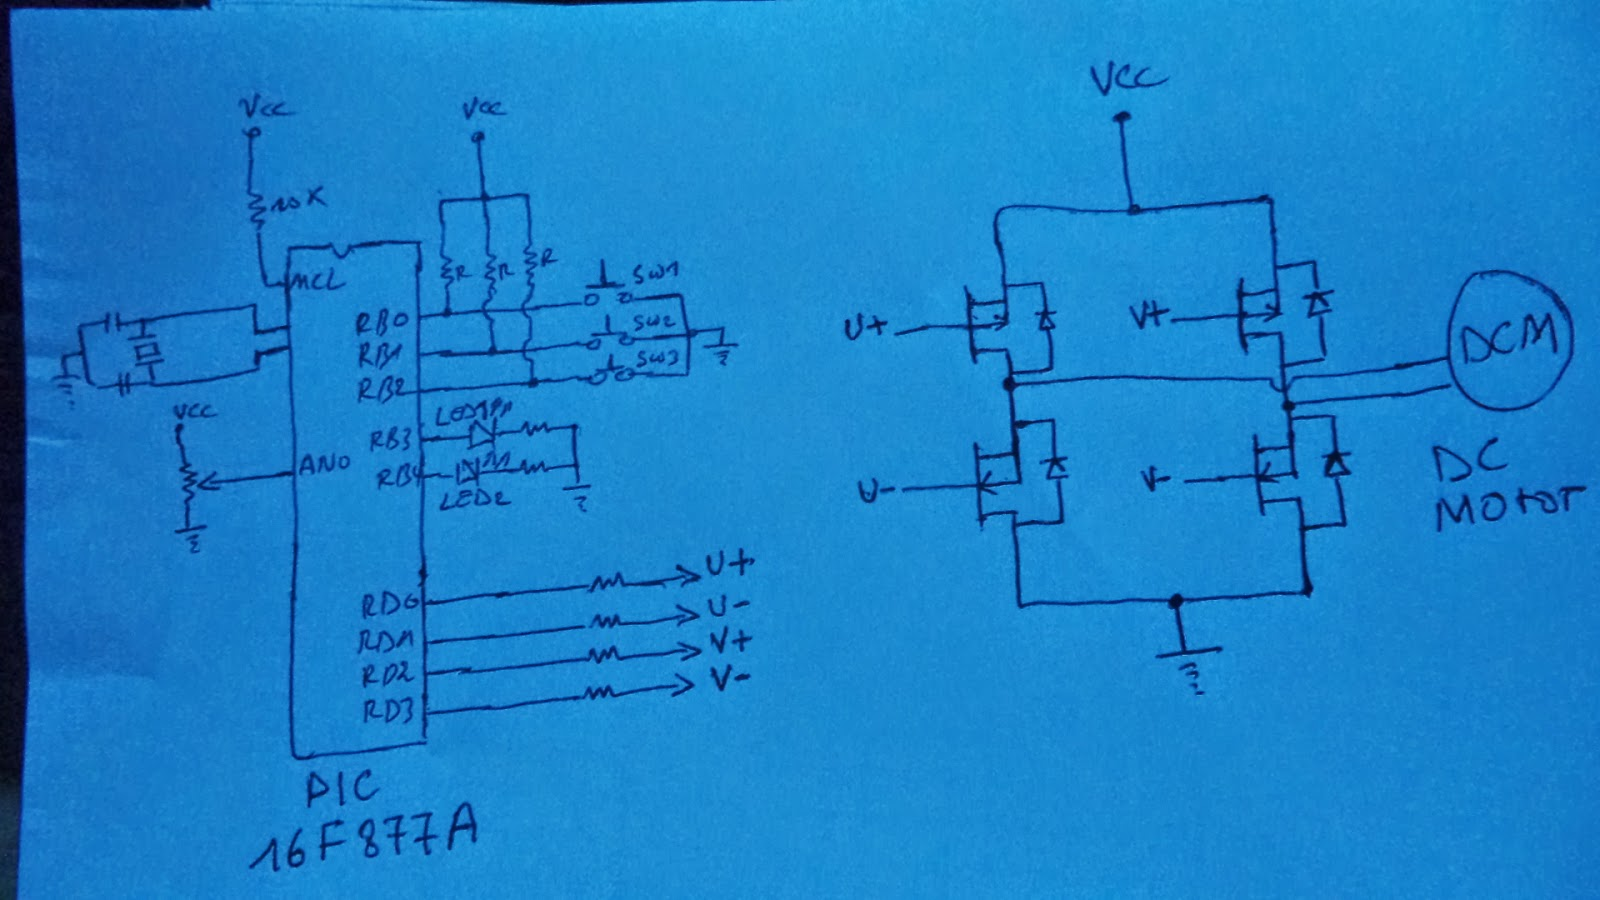 Circuits Lab 2 as well Induction Heater Circuit Diagram additionally DC Motor Speed likewise LED Driver Circuit Diagram besides Dyson Vacuum DC14 Parts Diagram. on arduino h bridge motor controller schematic